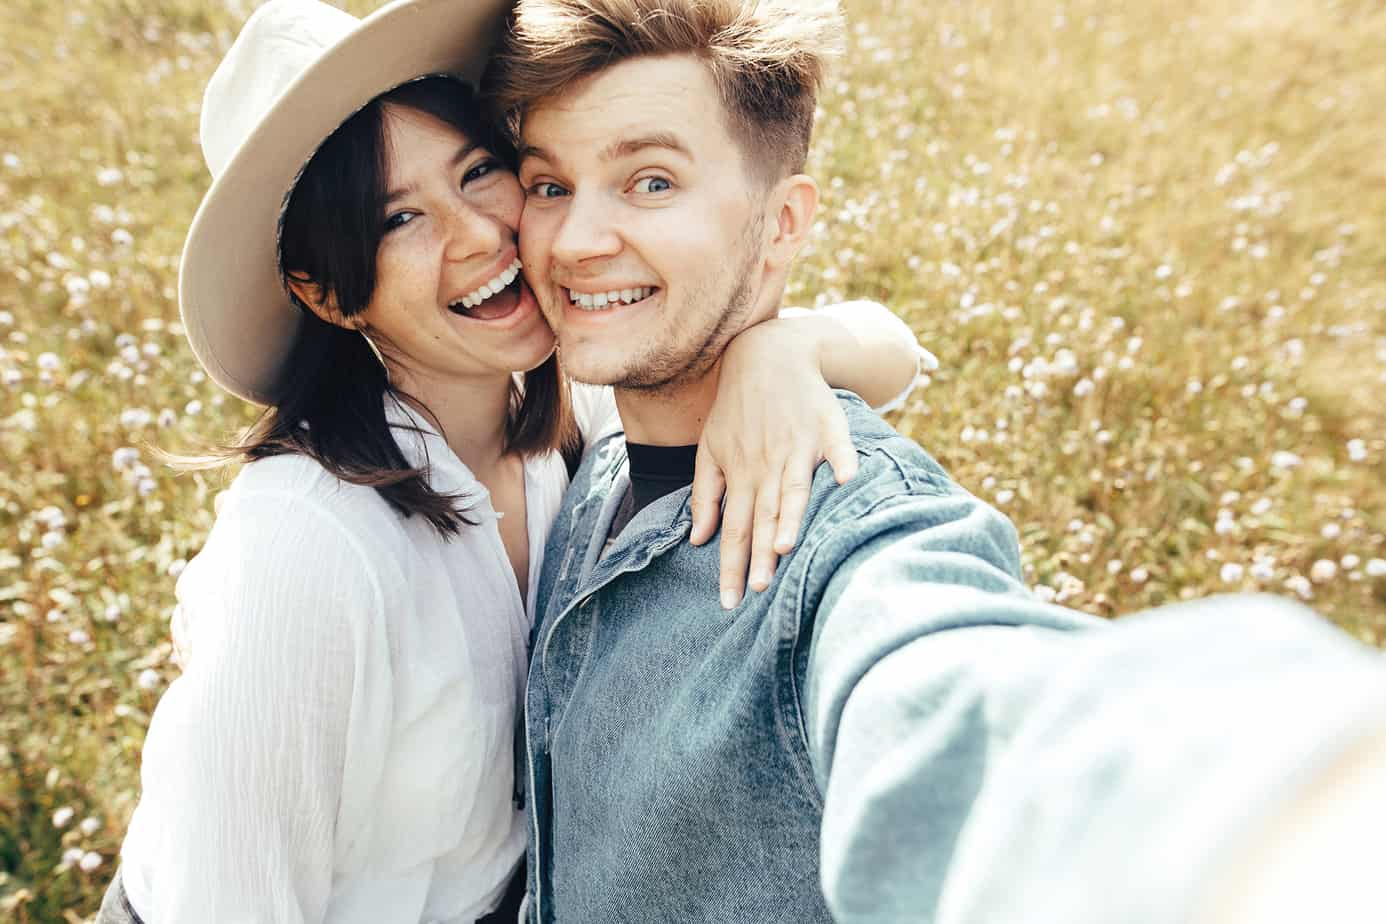 friendship in marriage - Happy hipster couple making selfie in sunny wildflower meadow, traveling in mountains. Stylish young family smiling and enjoying hiking on top of mountain, taking photo. Summer vacation